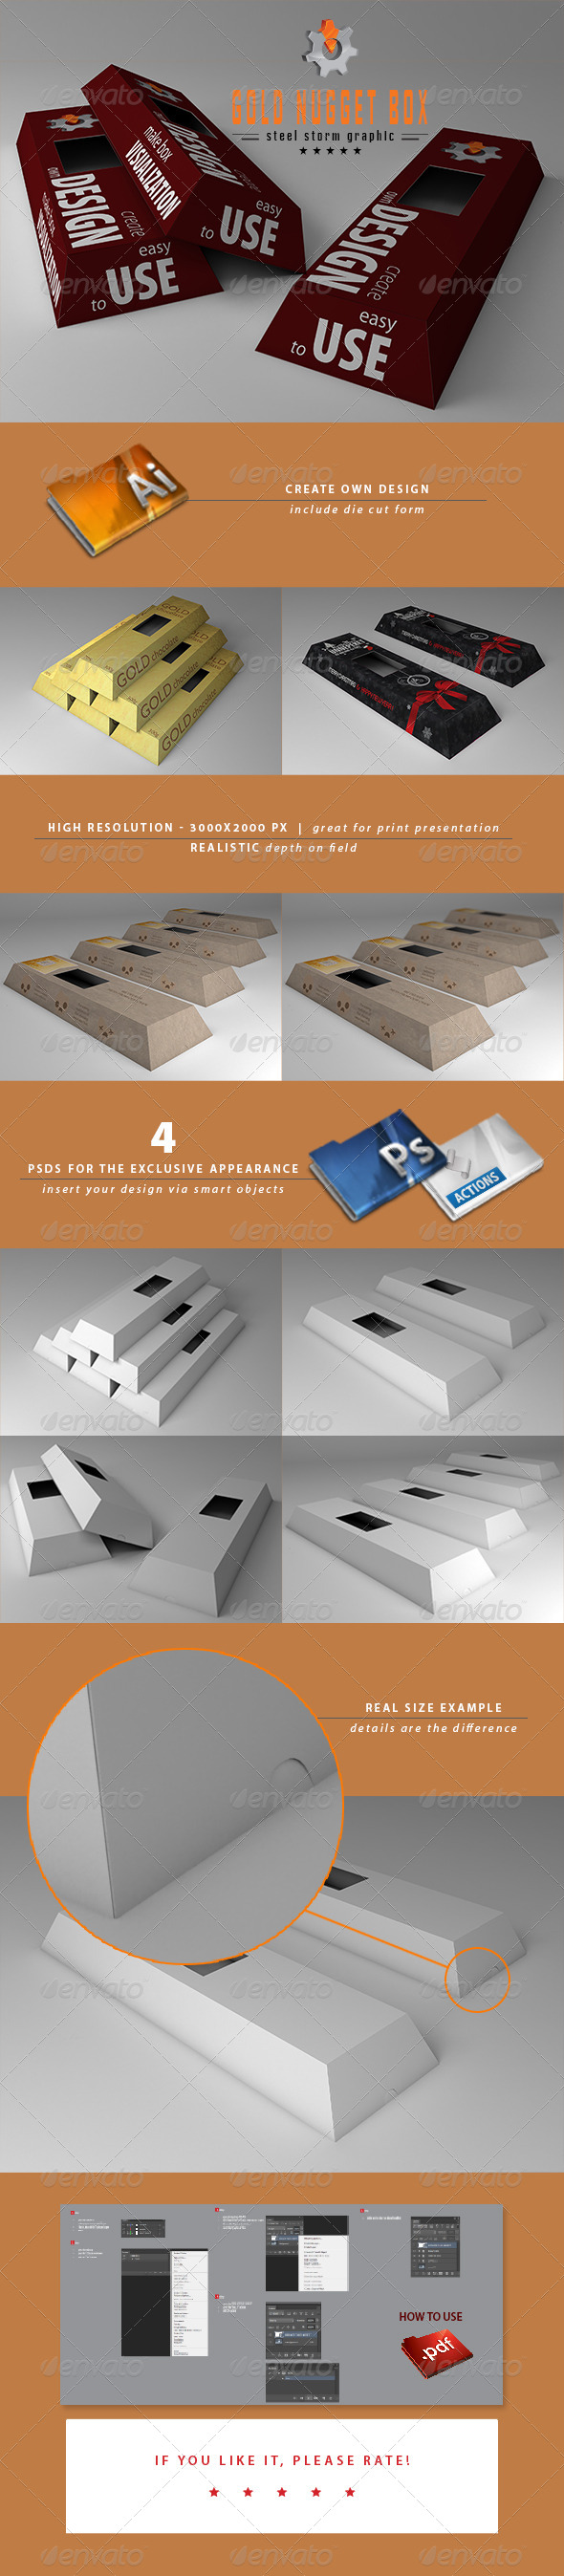 GraphicRiver 3D Chocolate Box Mockup 7021389